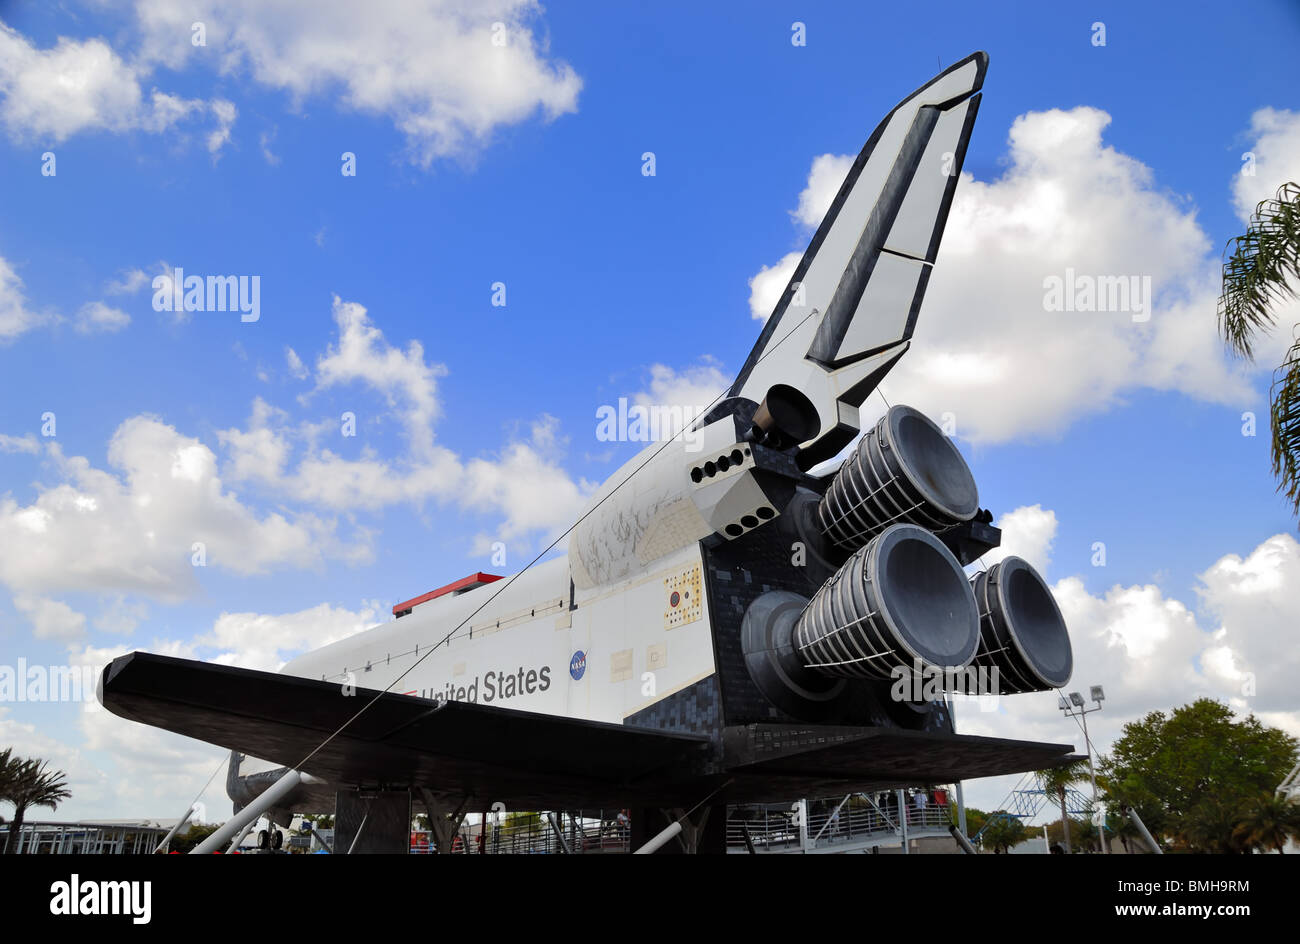 Replica of a Space Shuttle at the Visitors Center, Kennedy Space Center, Cape Canaveral, Florida, United States - Stock Image